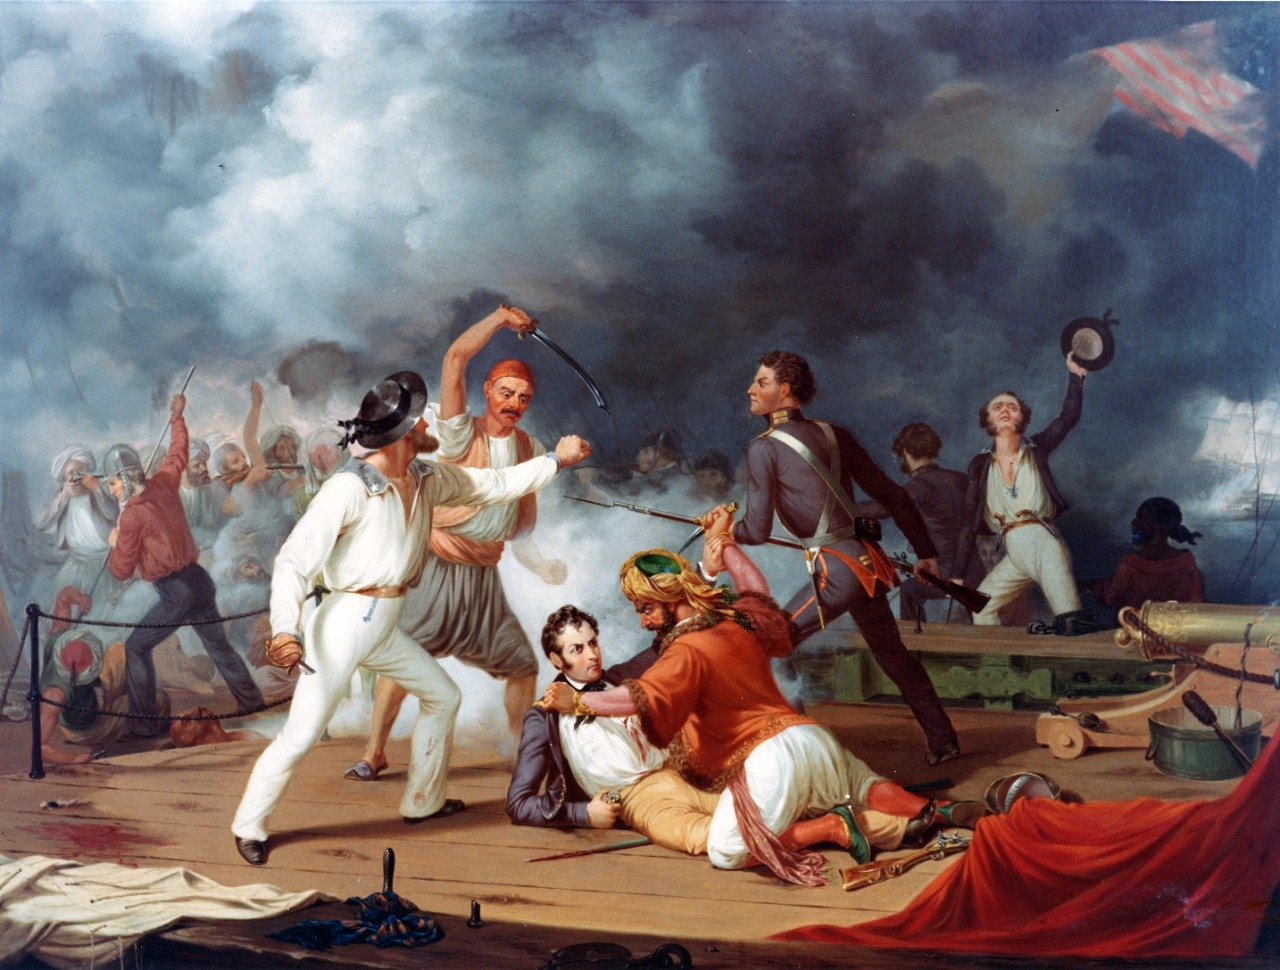 """Stephen Decatur's Conflict with the Algerine at Tripoli"" during the boarding of a Tripolitan gunboat on 3 August 1804. Oil over print on canvas, 30"" x 25"", by an unidentified artist, after Alonzo Chappell (1829-1887). Painting in the U.S. Naval Academy Museum Collection. Gift of Chester Dale, 1942. (Official U.S. Navy Photograph KN-10949)"